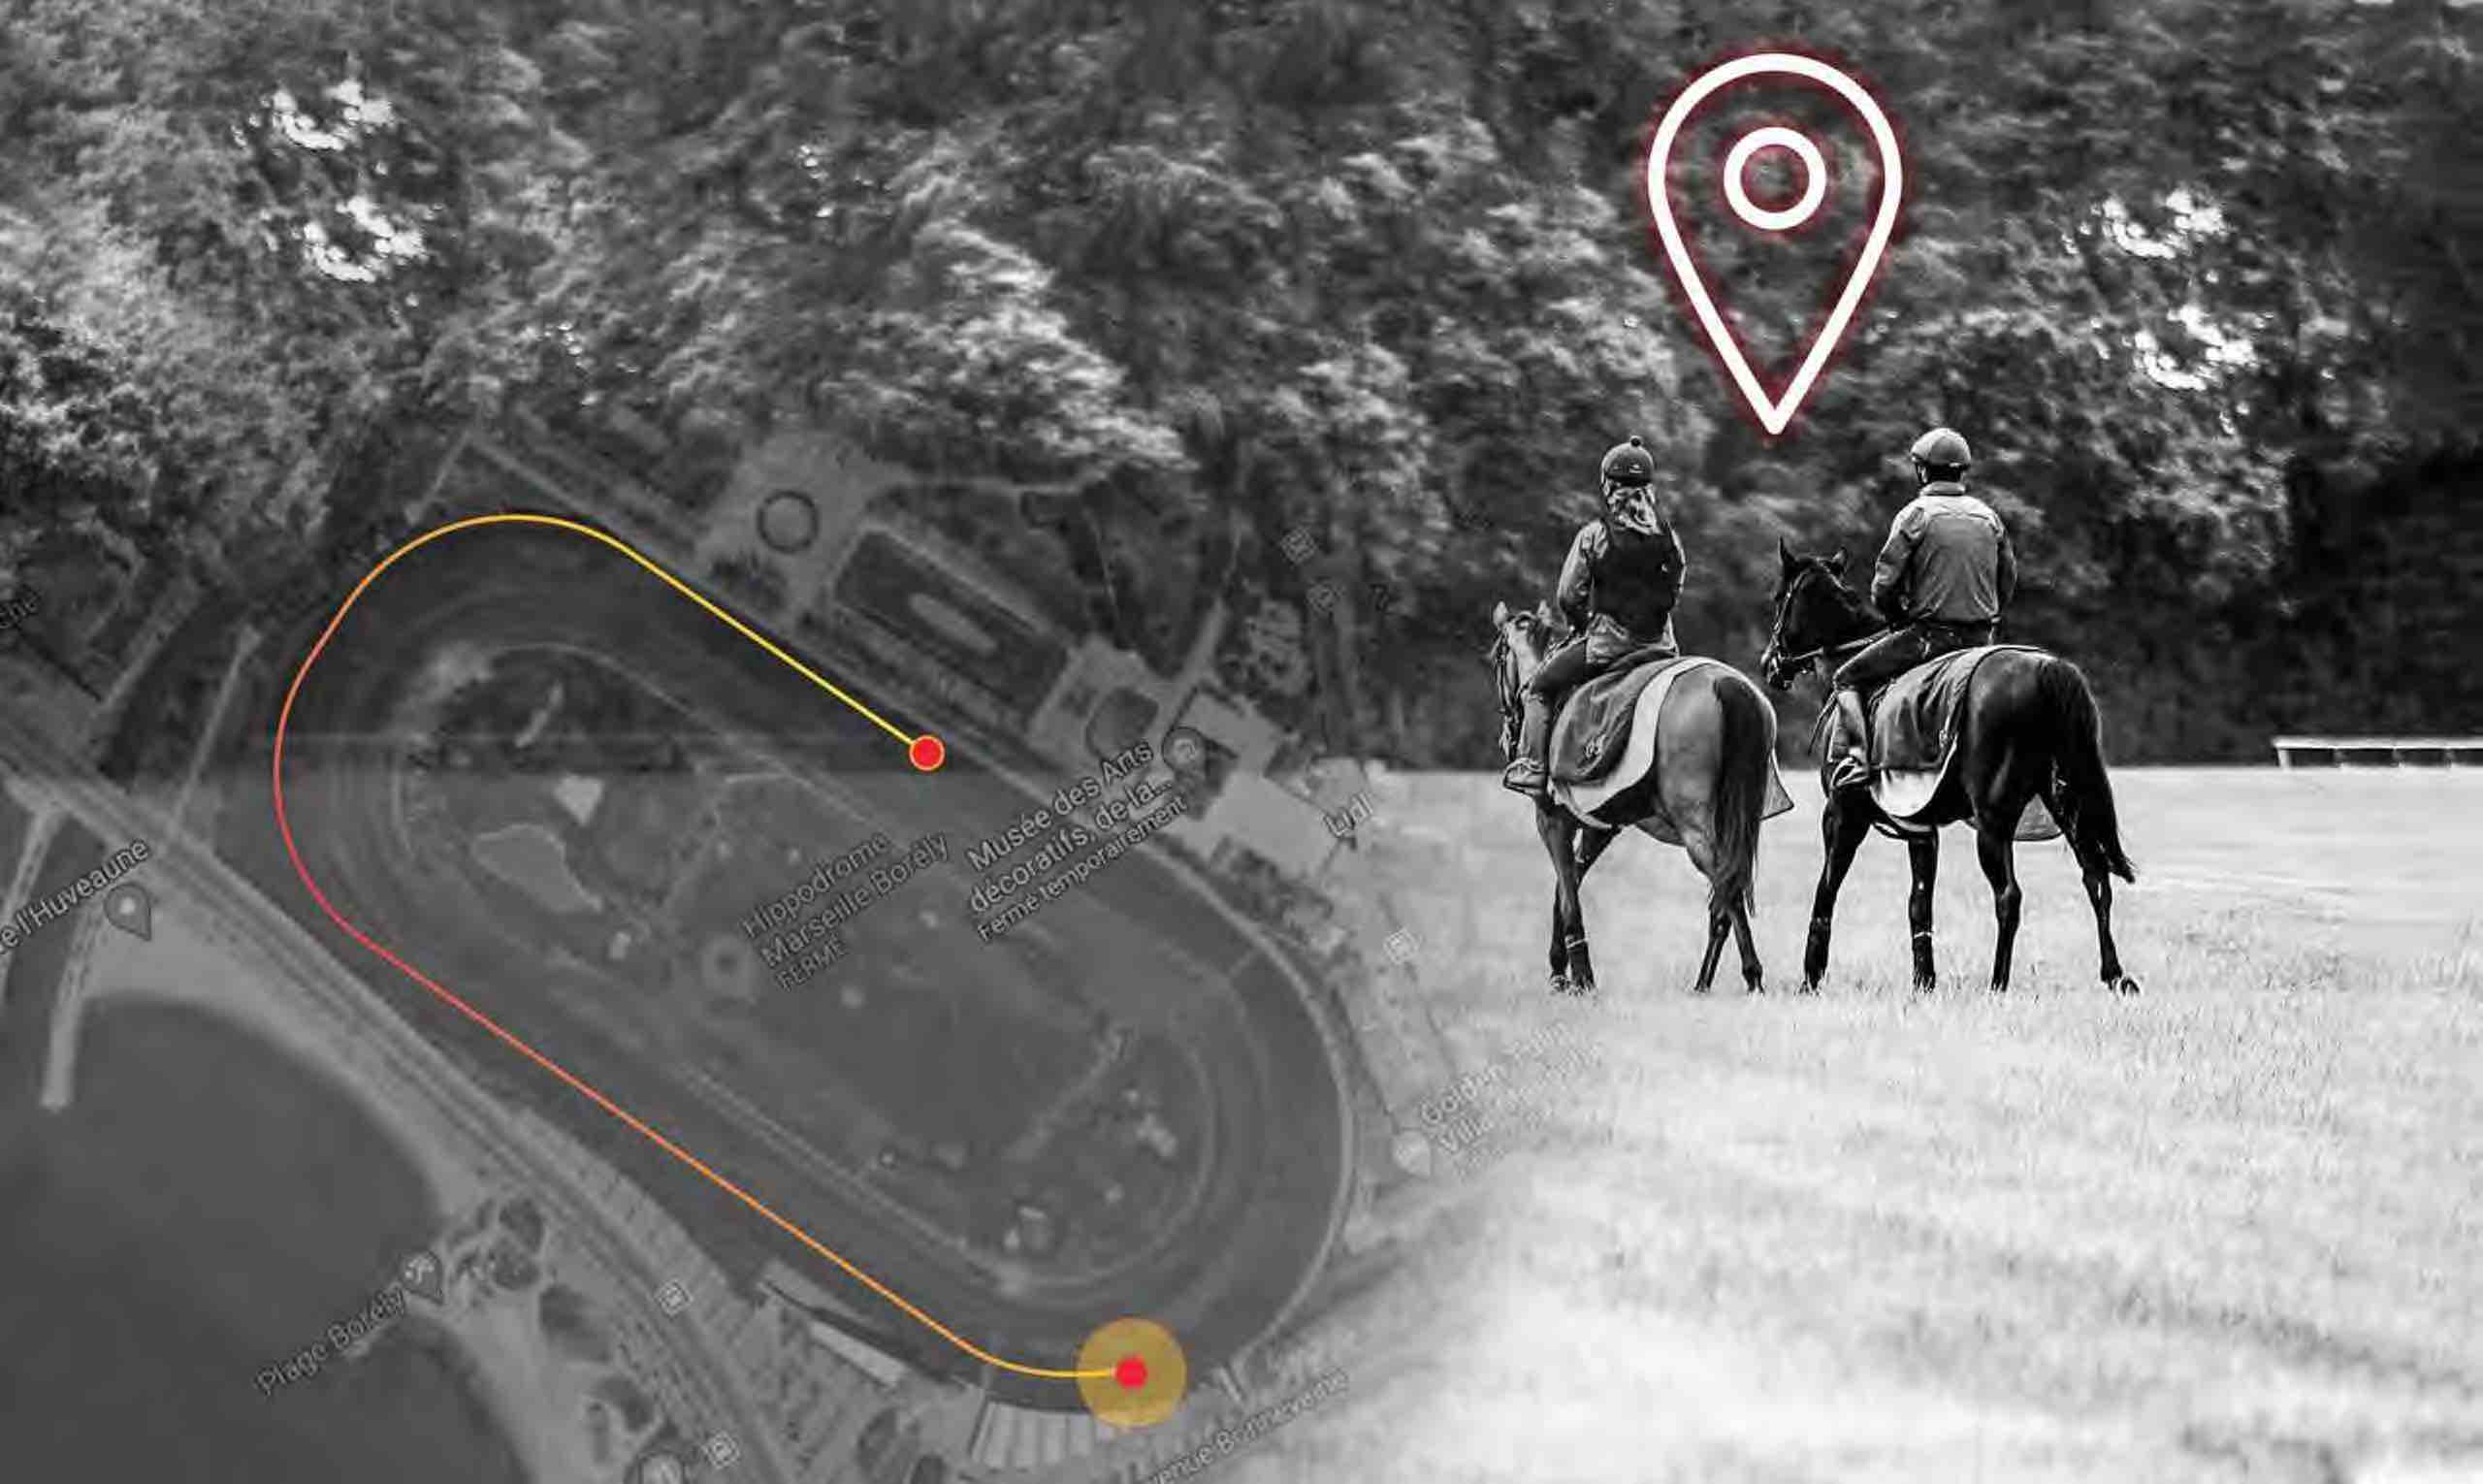 Racehorses during training with sensor collecting gps data